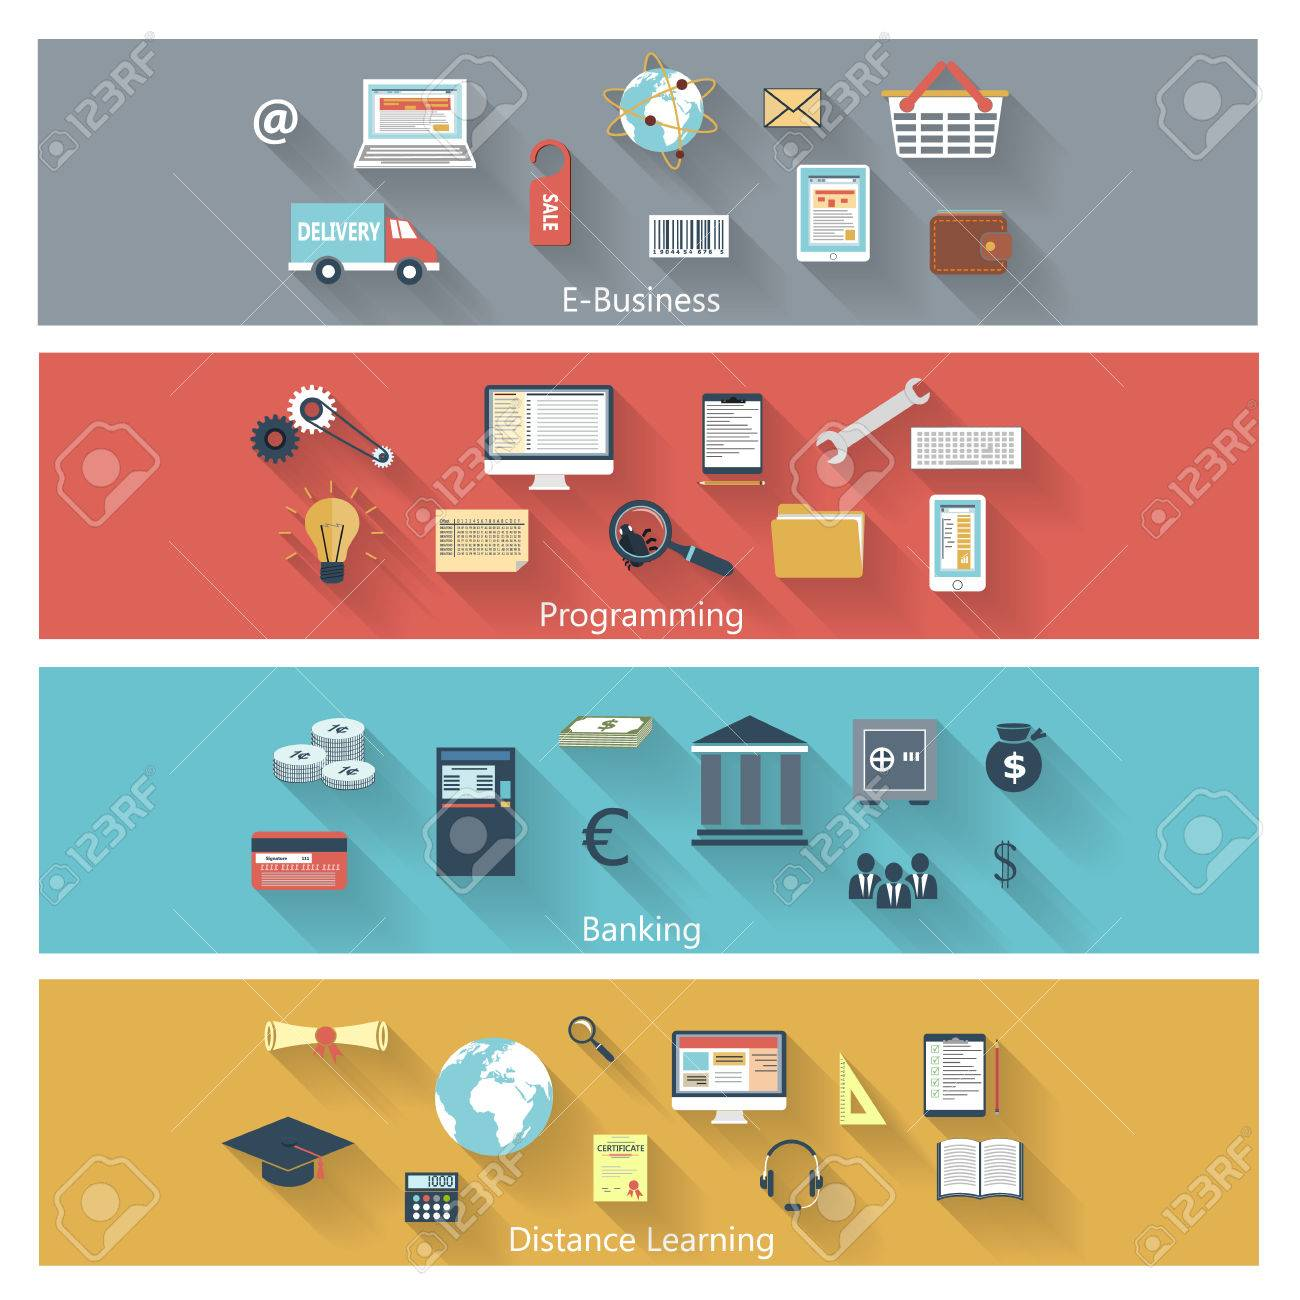 Set of modern concepts in flat design with long shadows and trendy colors for e-business, web, mobile applications, distance learning, banking, programming etc. Vector eps10 illustration Stock Vector - 27495864